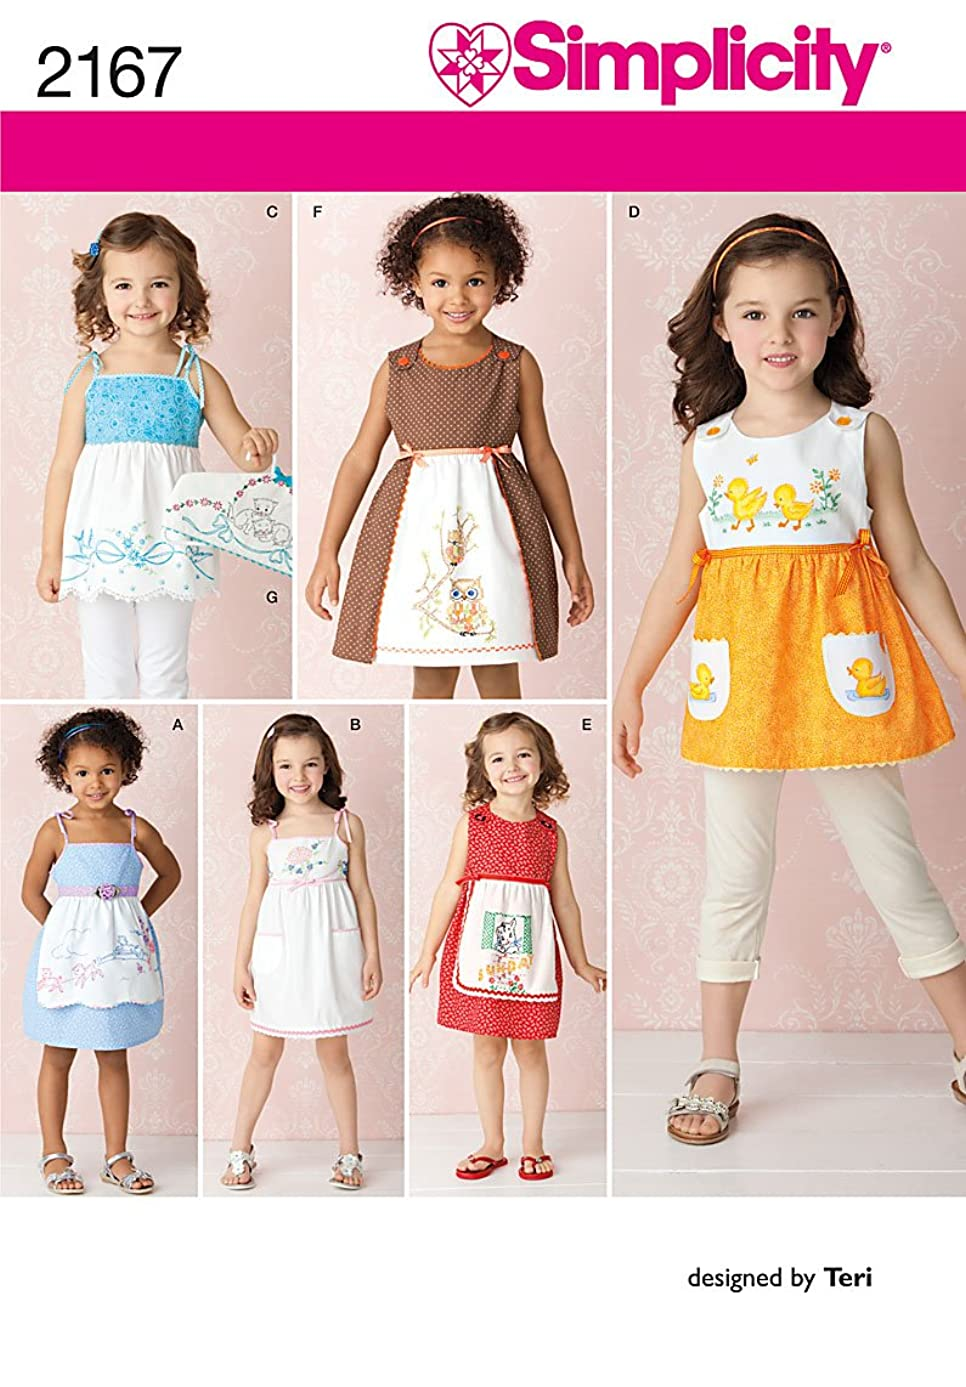 Simplicity Sewing Pattern 2167: Child's Dresses and Hanger Cover, Size A (3-4-5-6-7-8)